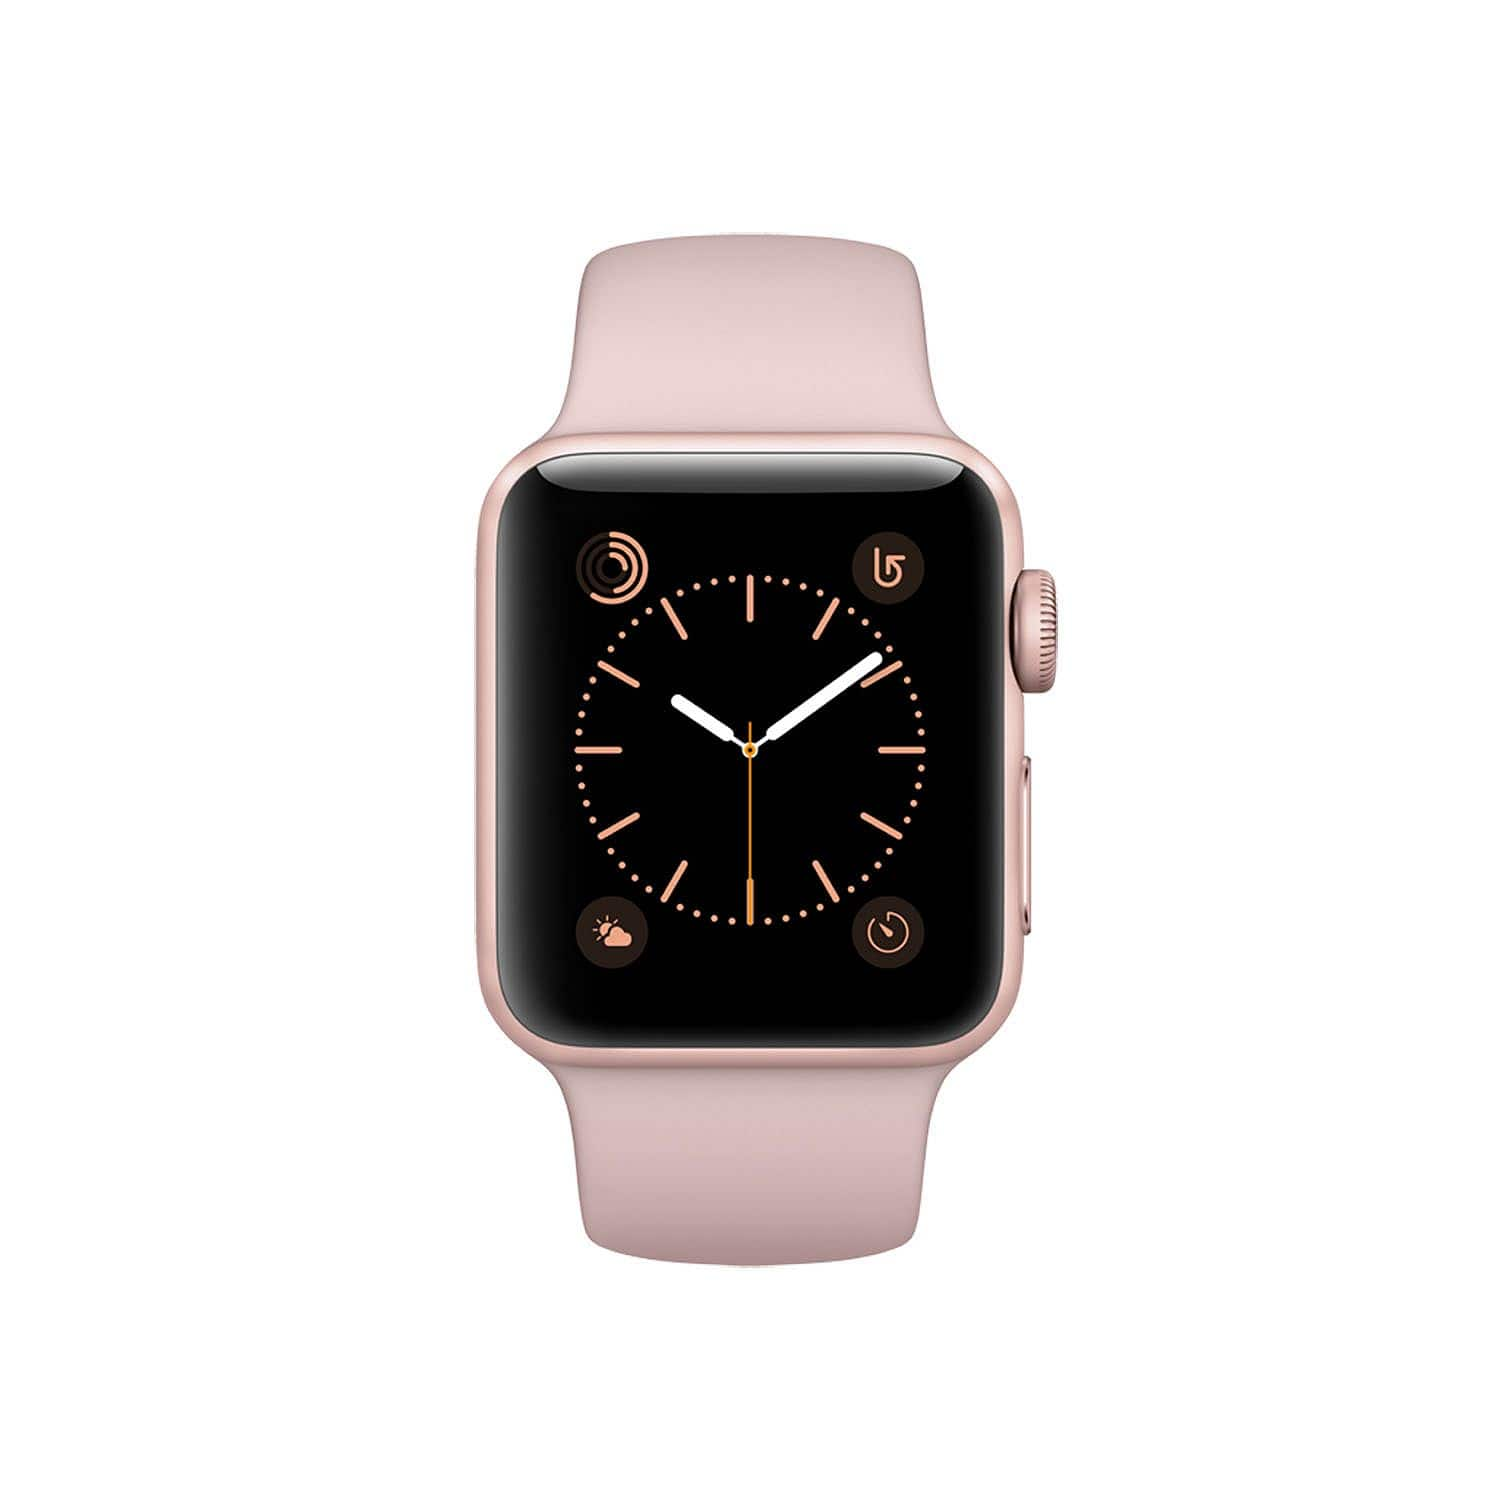 Apple Watch Series 2 Rose Gold 38mm   For $257 at Sam's Club